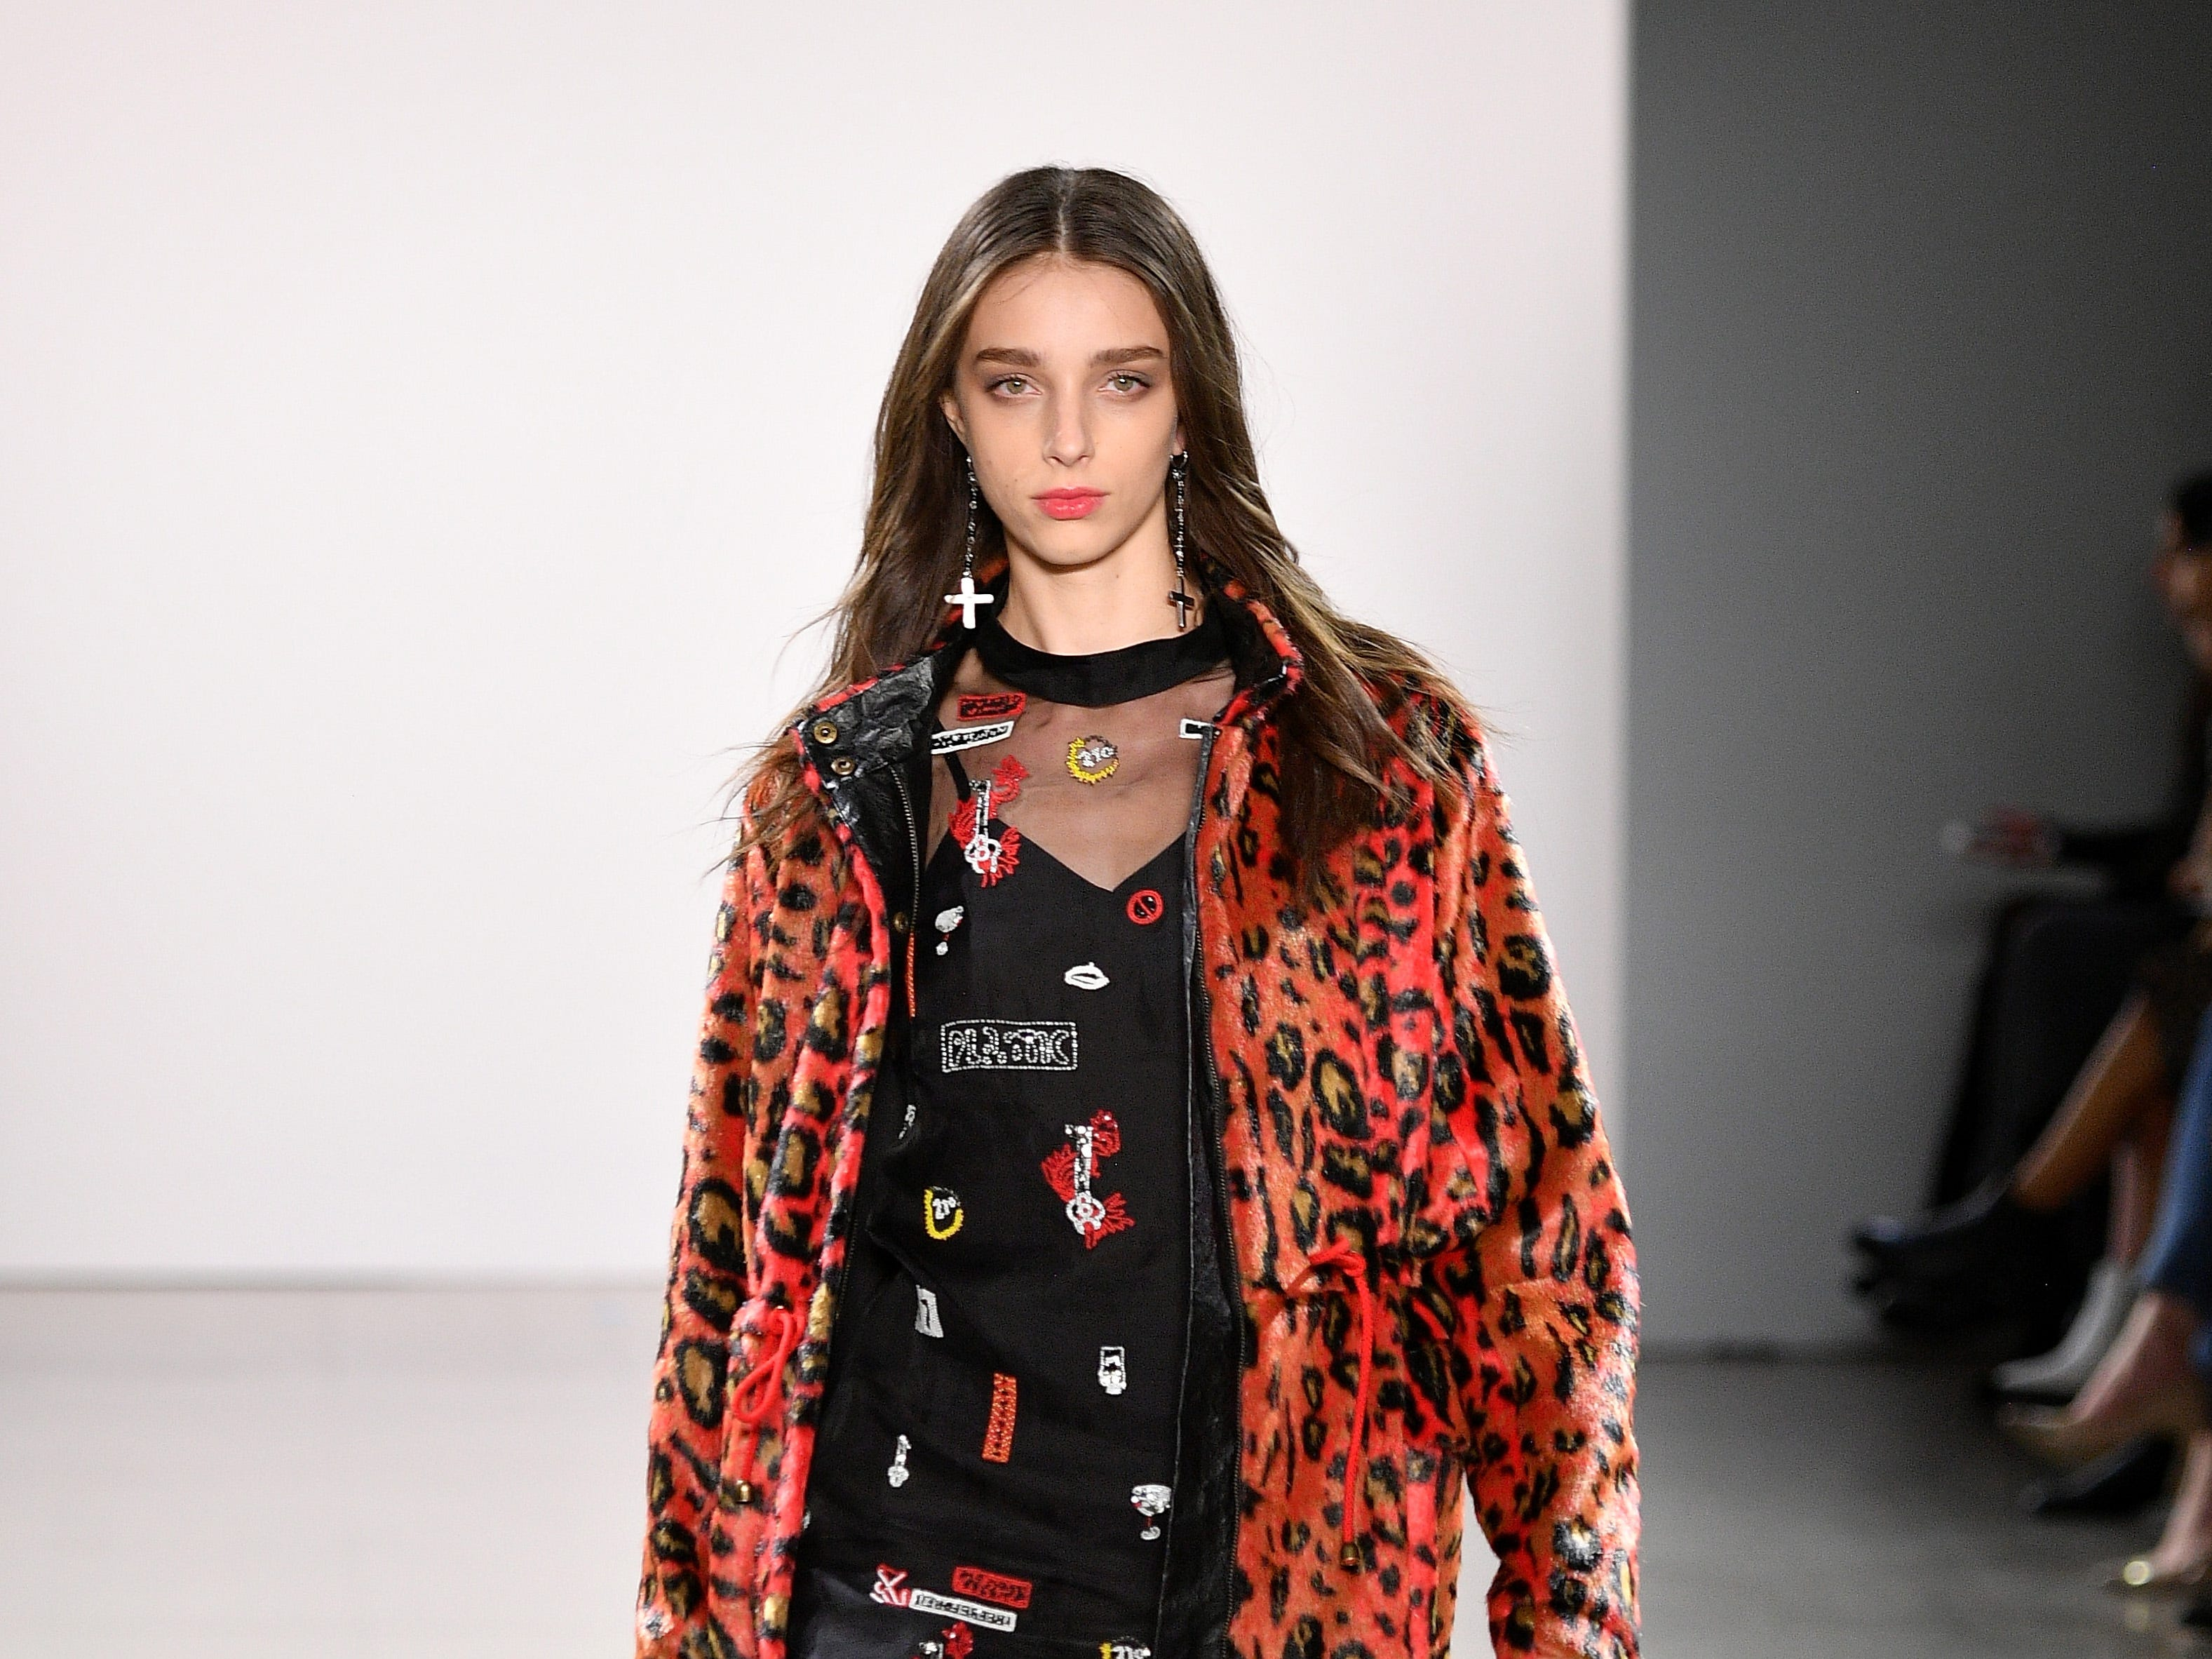 NEW YORK, NY - FEBRUARY 07:  A model walks the runway for the Nicole Miller fashion show during New York Fashion Week: The Shows  at Gallery II at Spring Studios on February 7, 2019 in New York City.  (Photo by Dia Dipasupil/Getty Images for NYFW: The Shows) ORG XMIT: 775289346 ORIG FILE ID: 1095196724